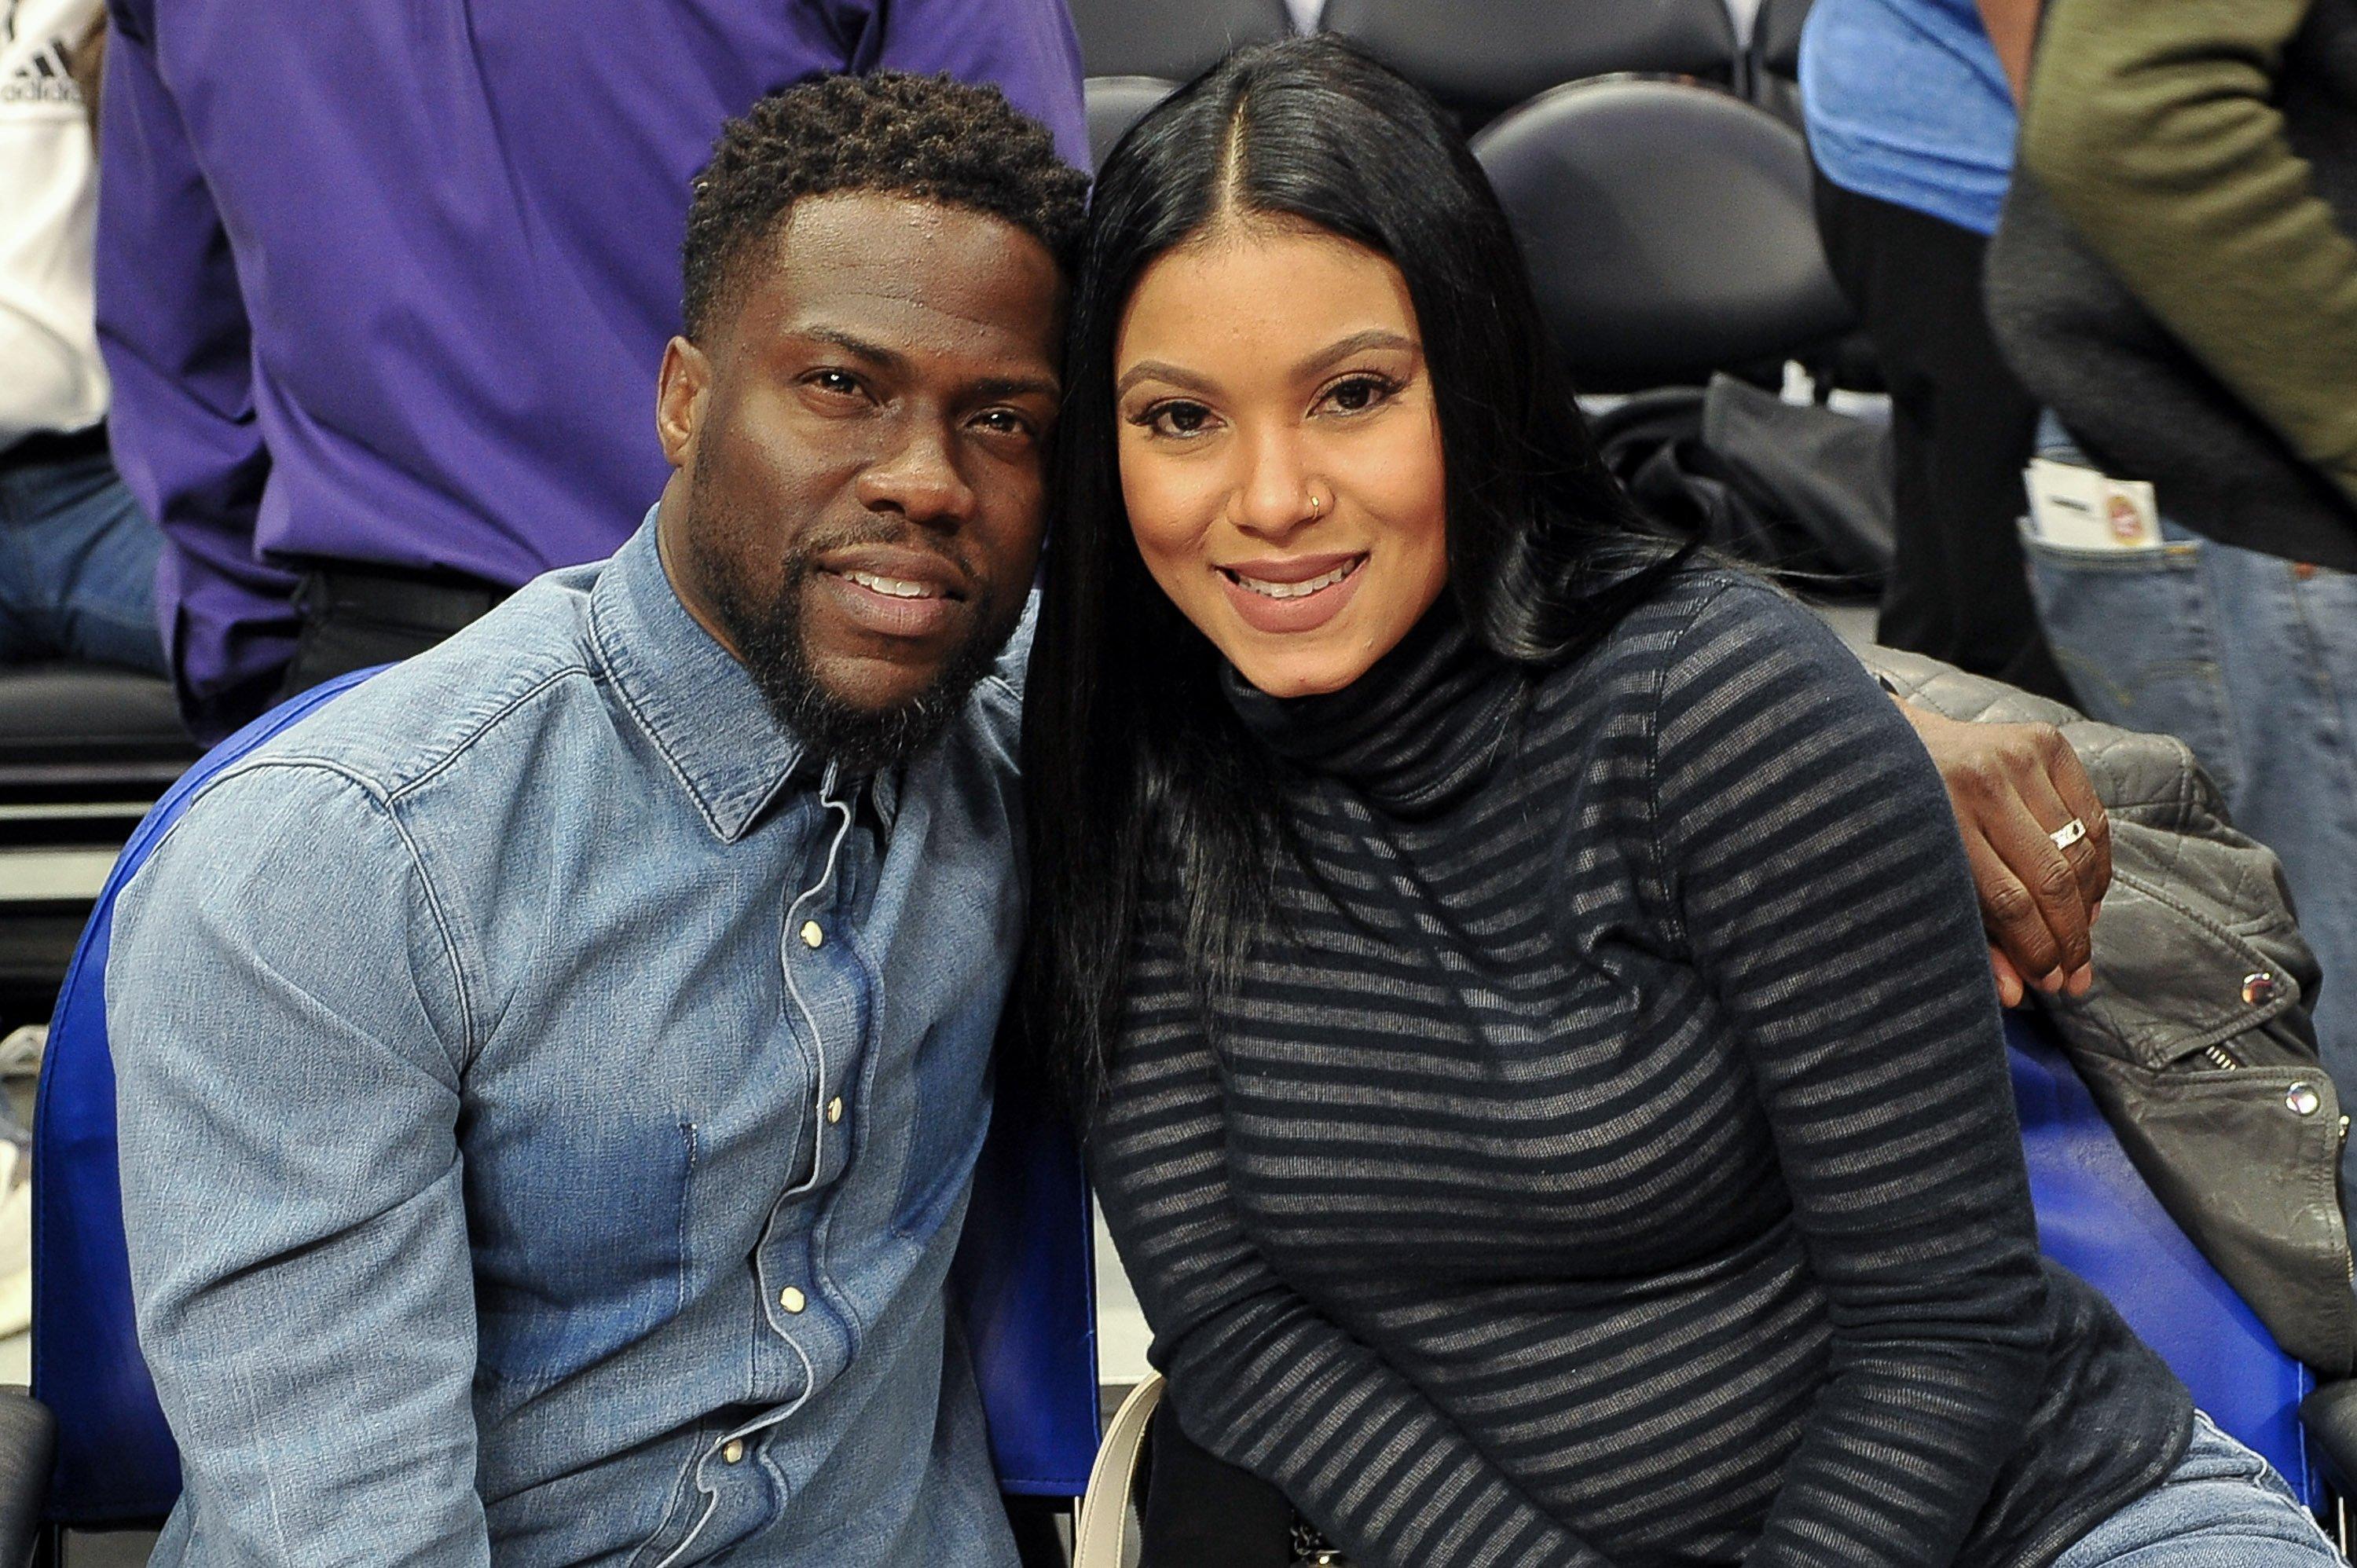 Kevin Hart with current wife, Eniko Parrish at an NBA game in Los Angeles in January 2018. | Photo: Getty Images